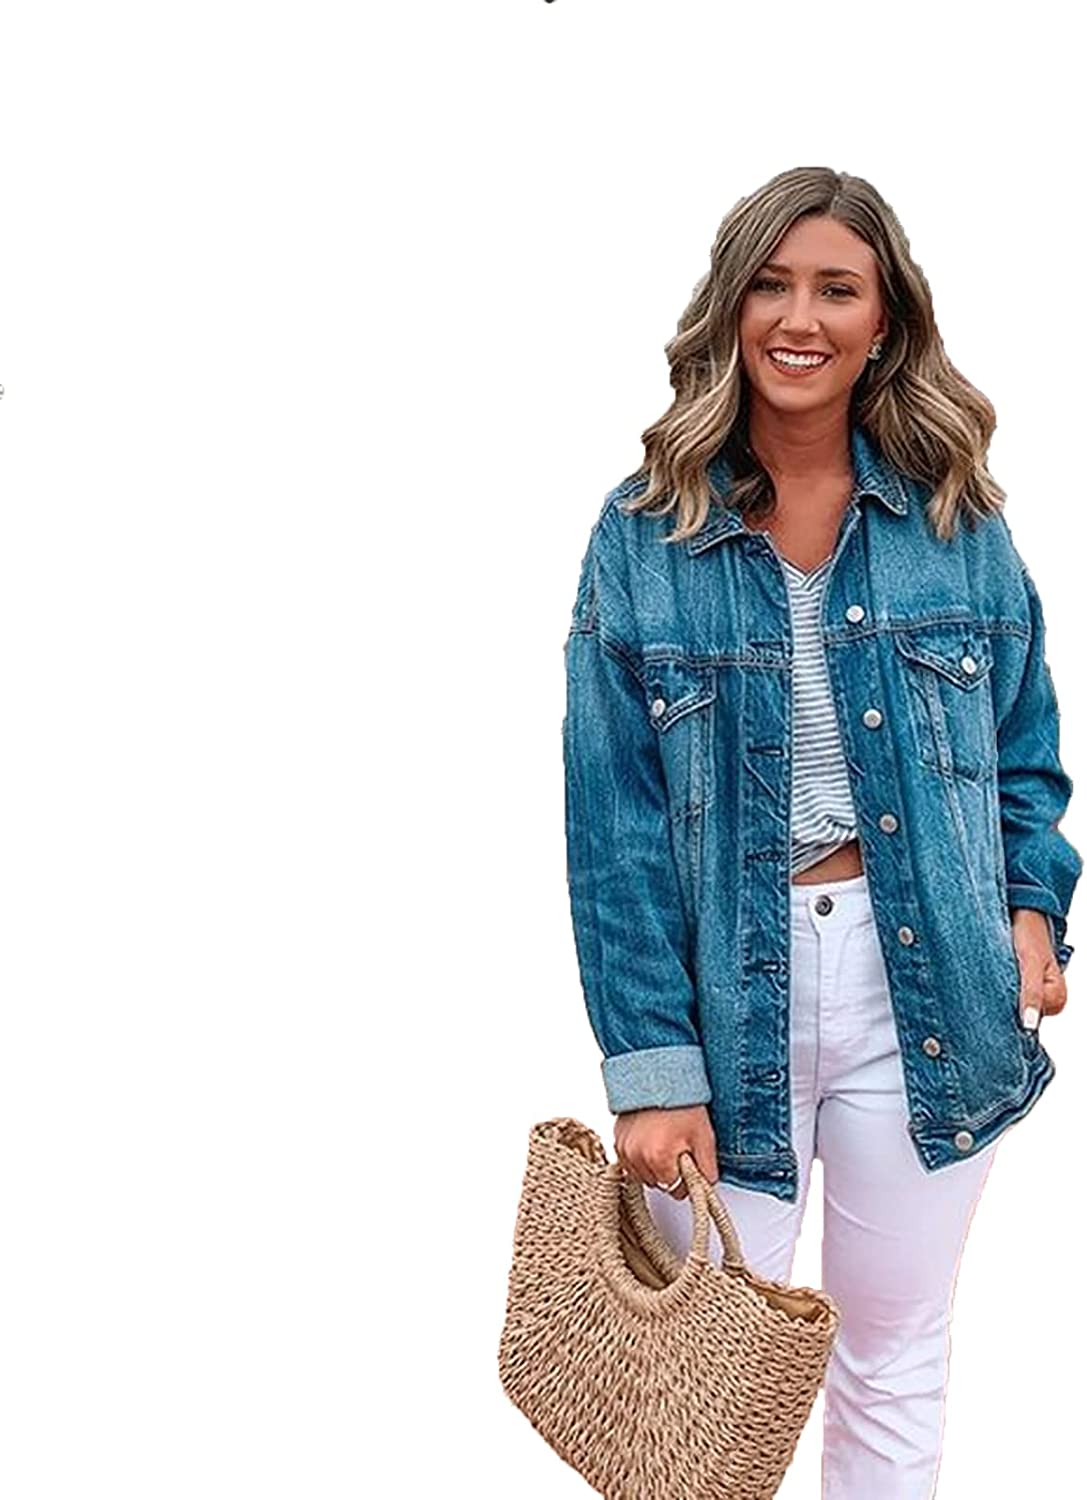 Women's Max 85% OFF Fashion Denim Jacket Casual Basic Button Sleev Down Price reduction Long